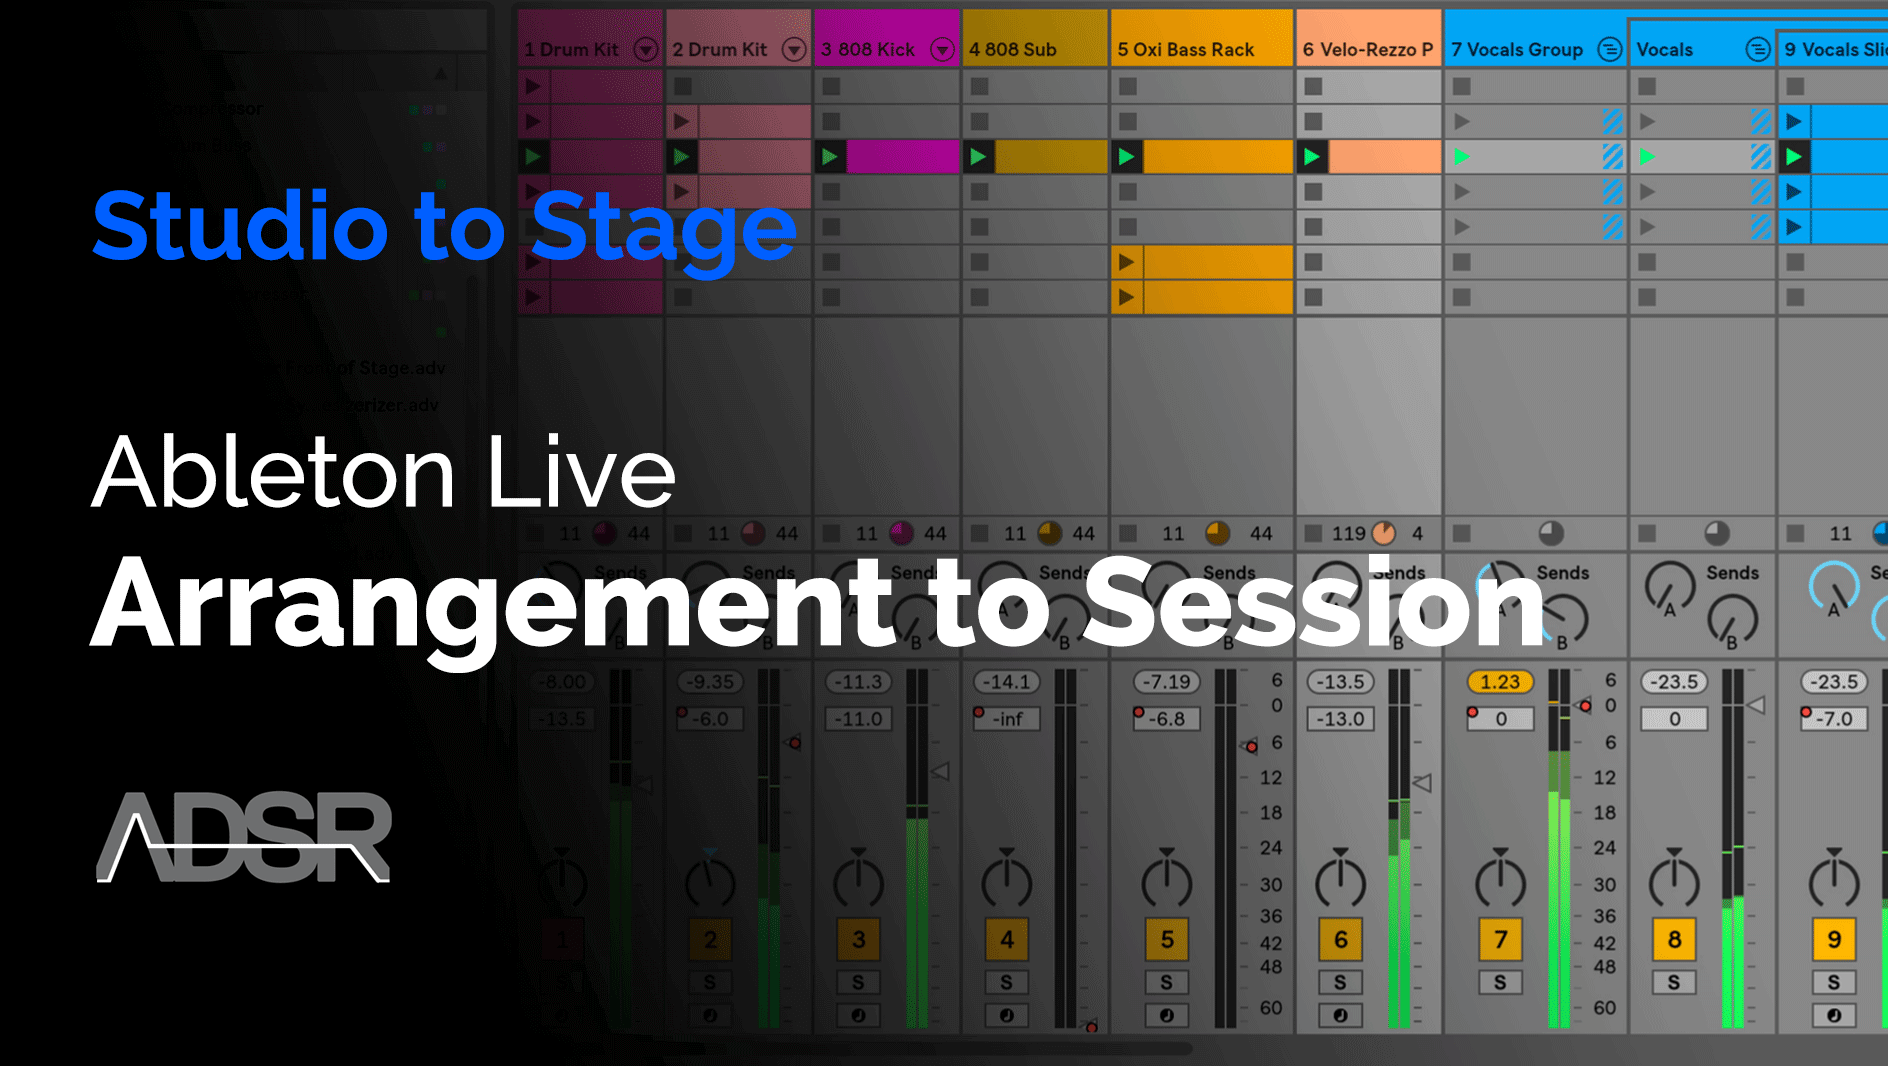 From Studio to Stage - From arrangement to Session